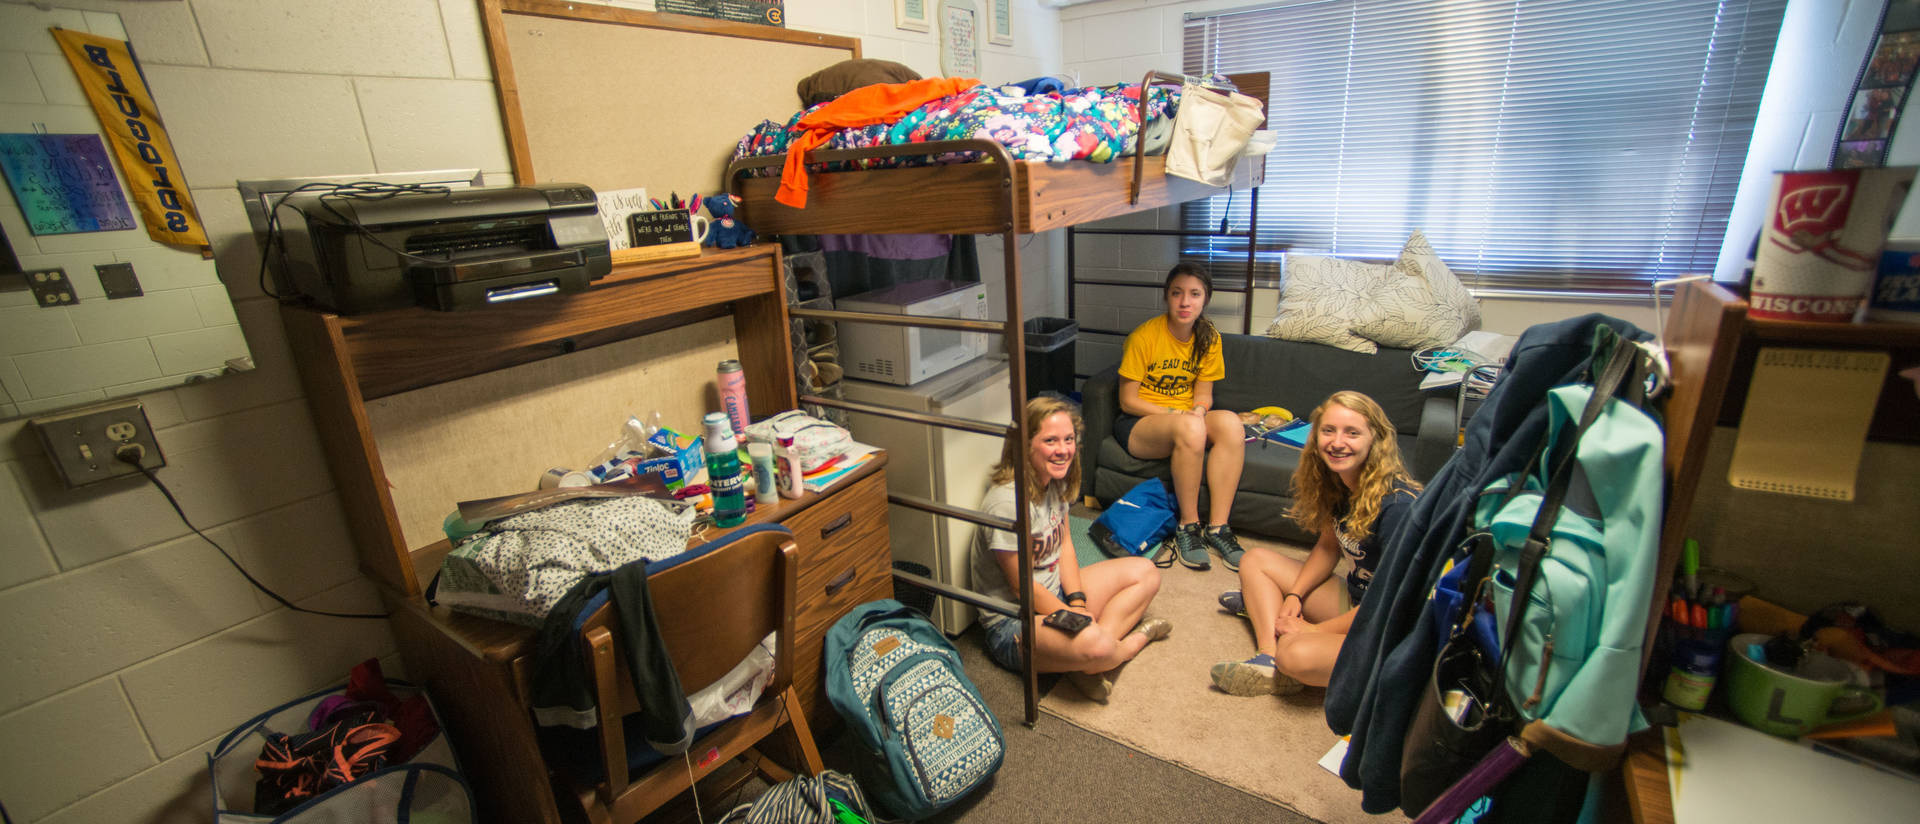 Three UWEC students sitting in their dorm room